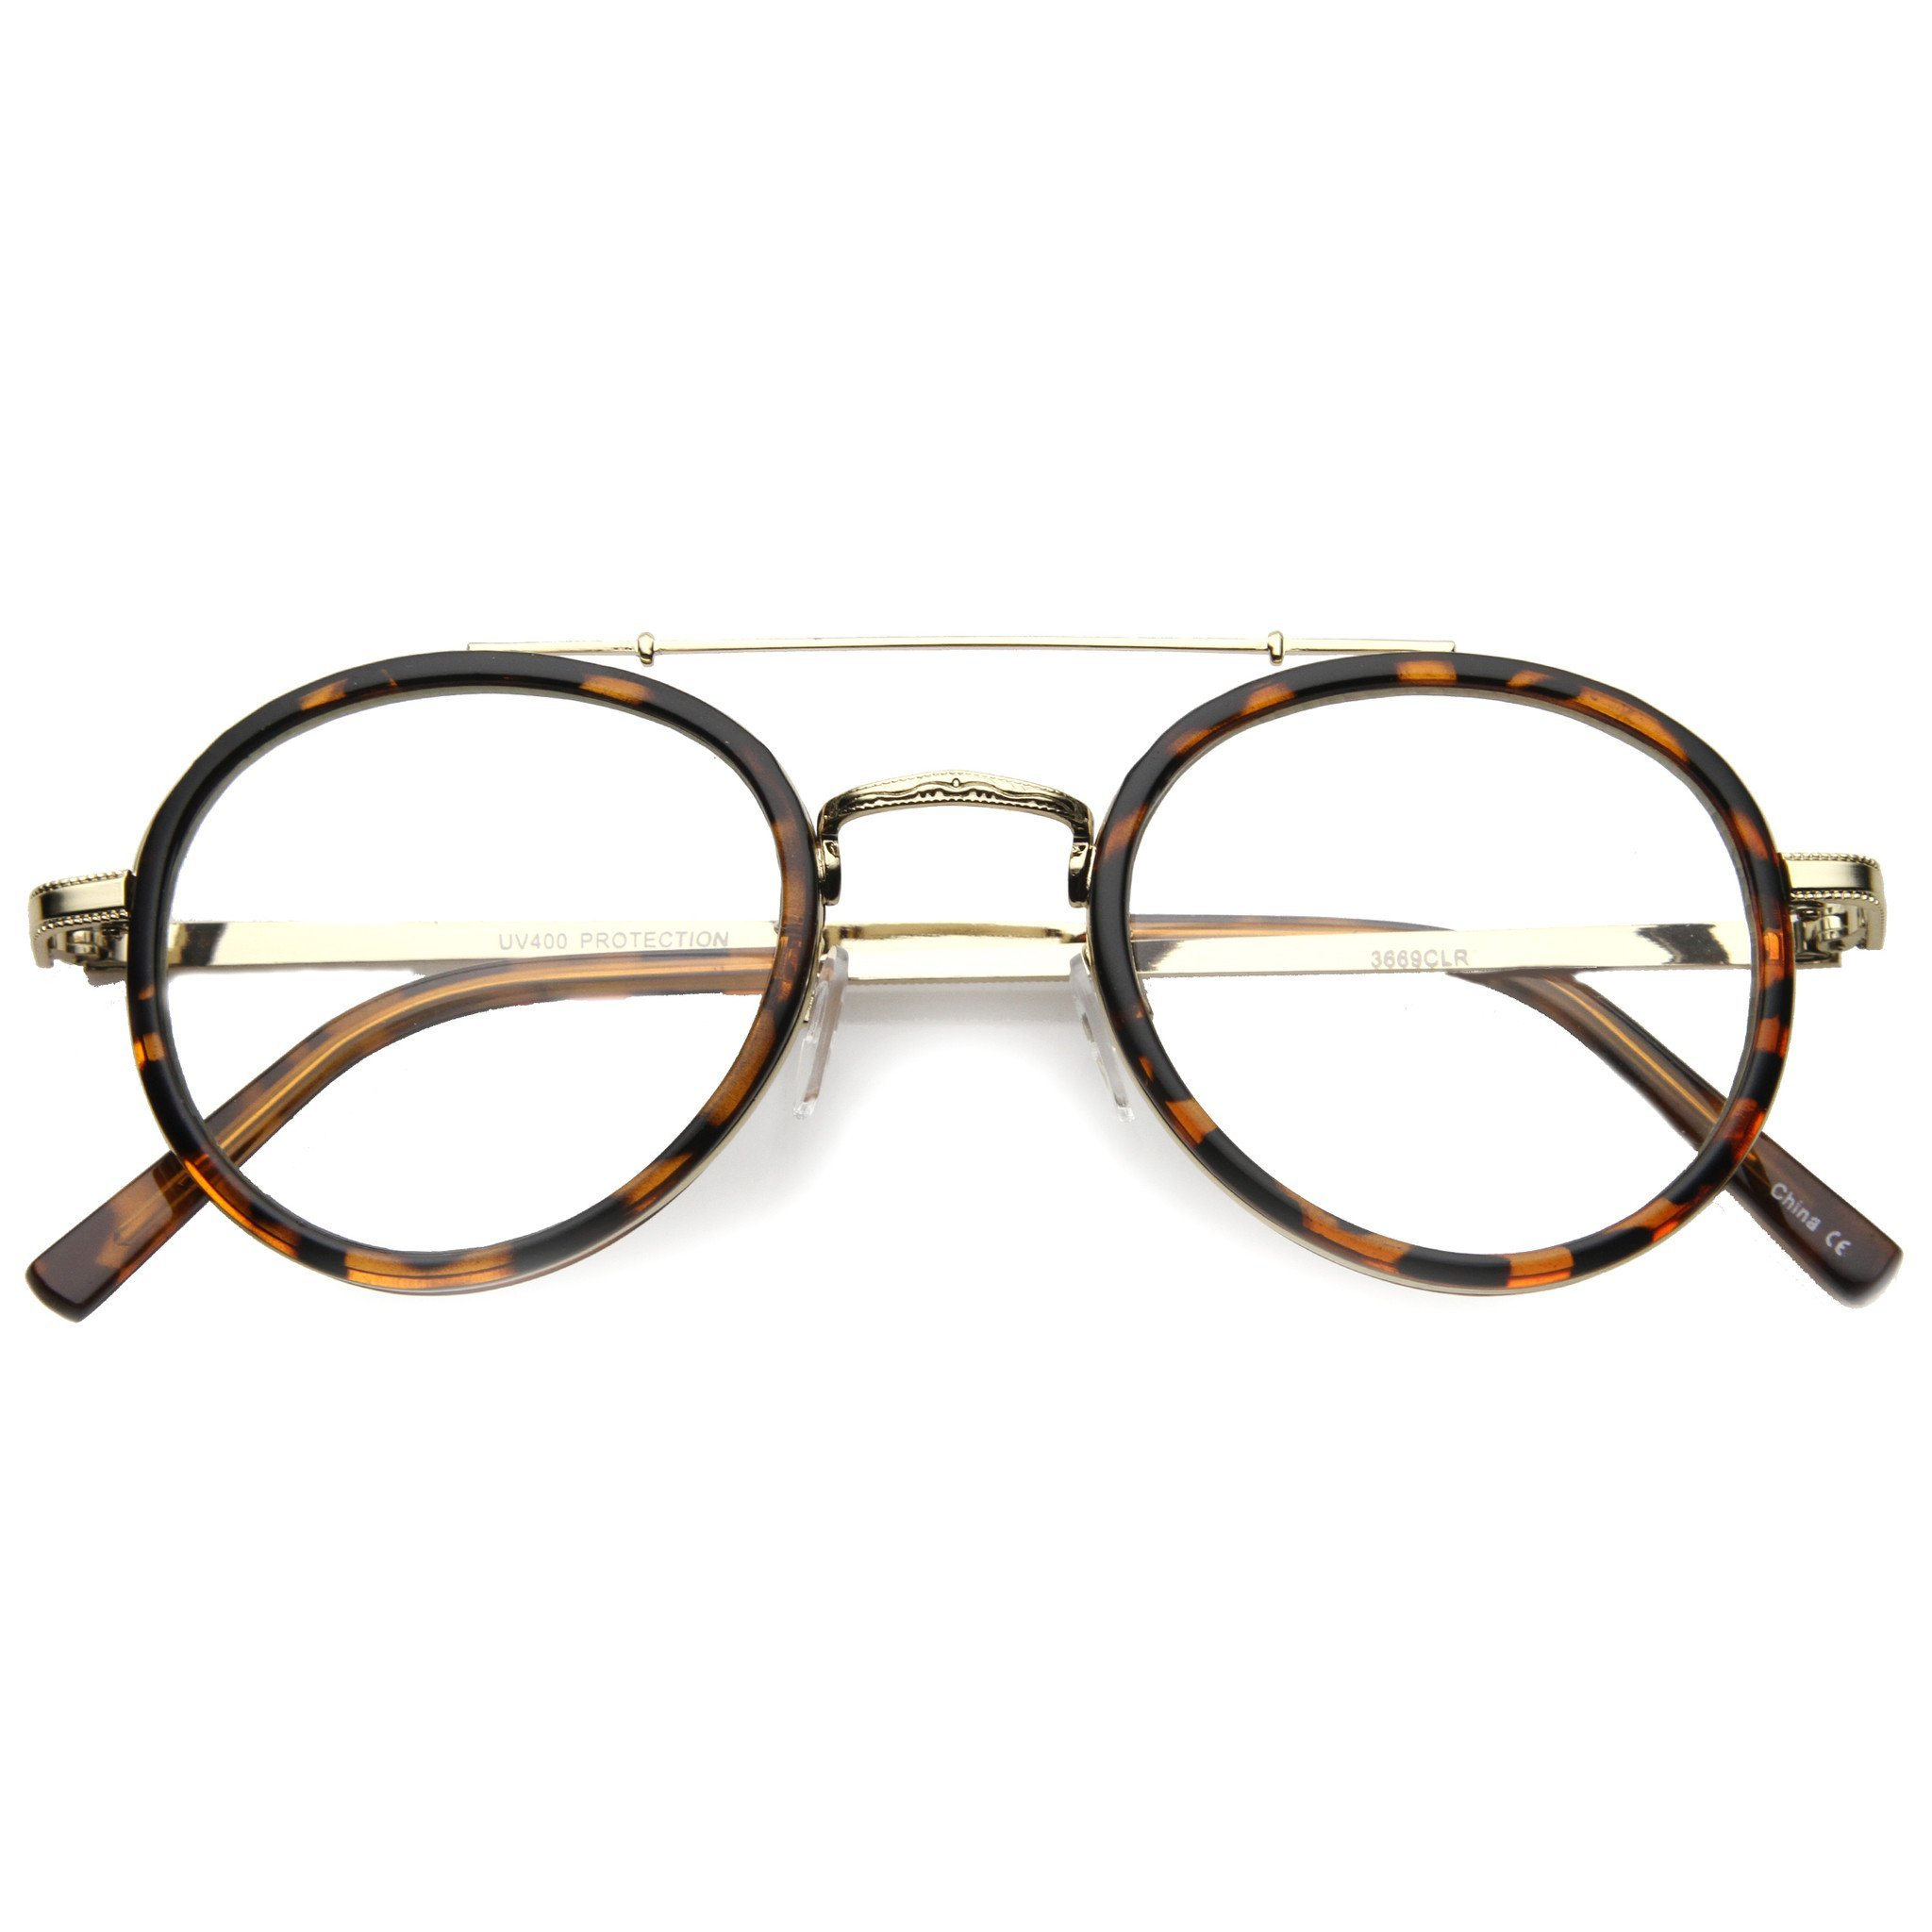 65095b39dd Retro Hipster Indie Dapper Round Clear Lens Aviator Glasses 9922